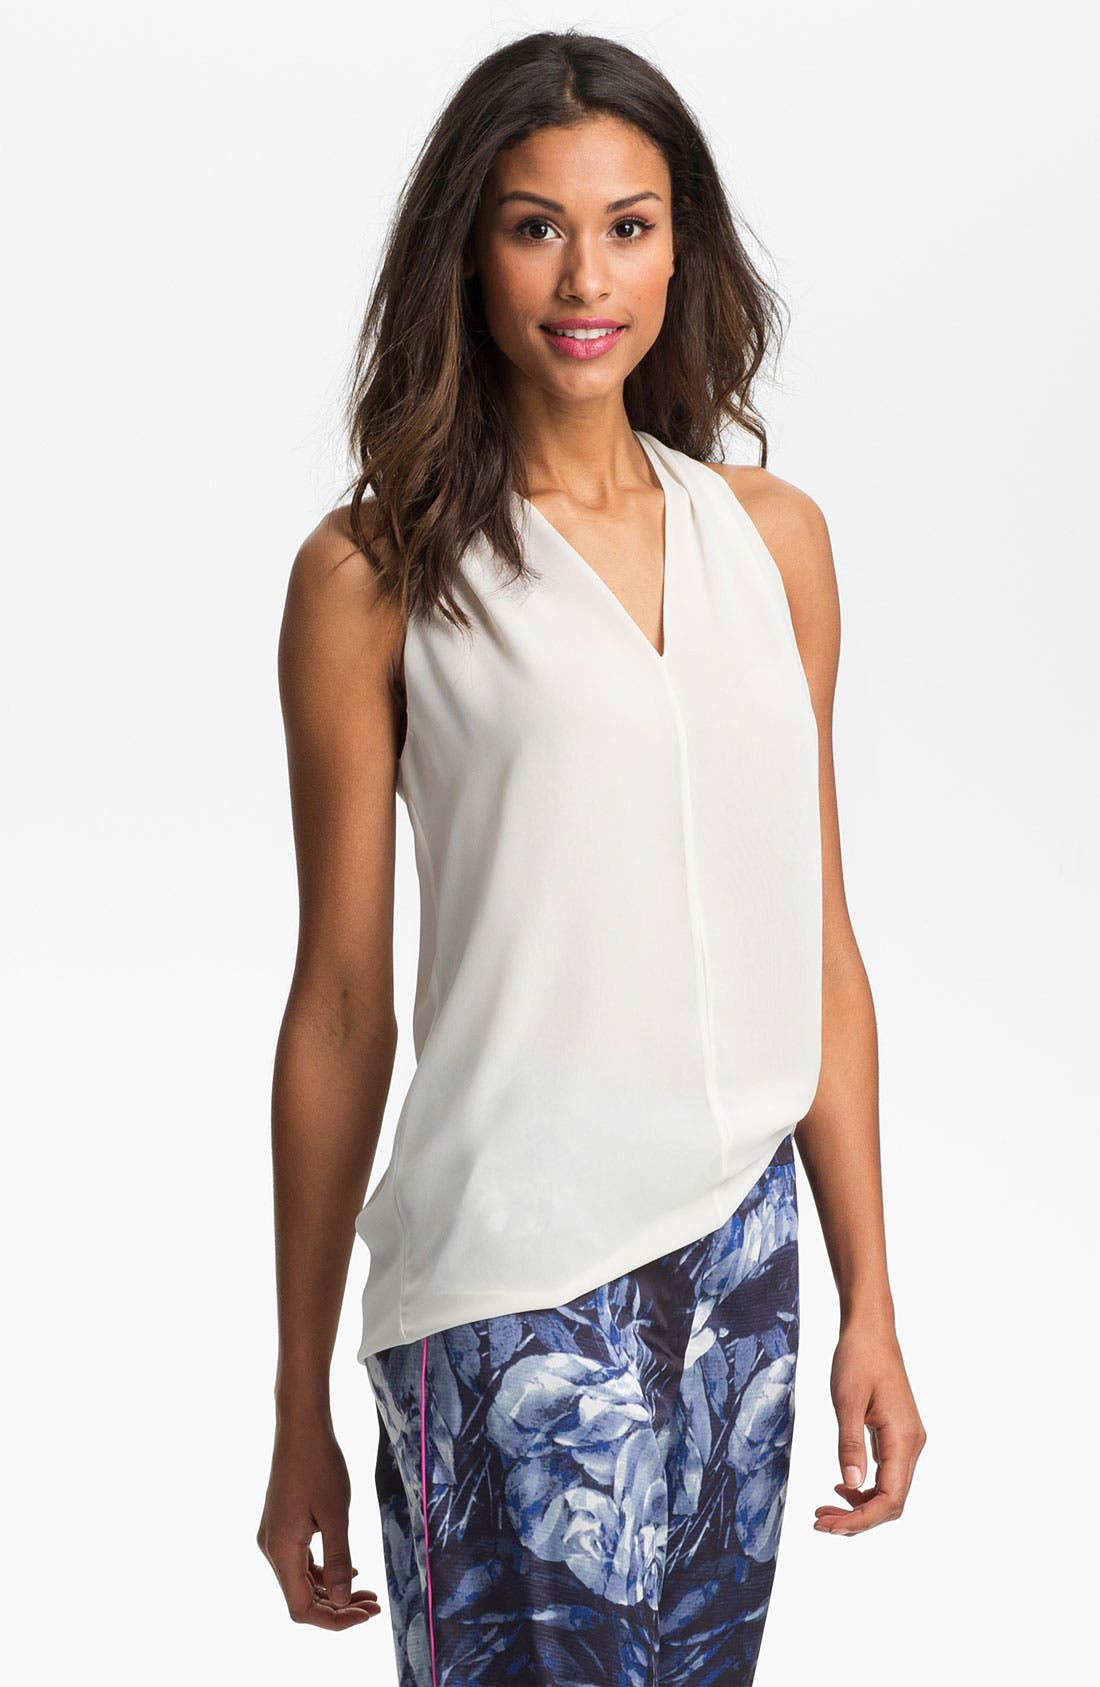 Alternate Image 1 Selected - Vince Camuto Sleeveless V-Neck Blouse (Regular & Petite)